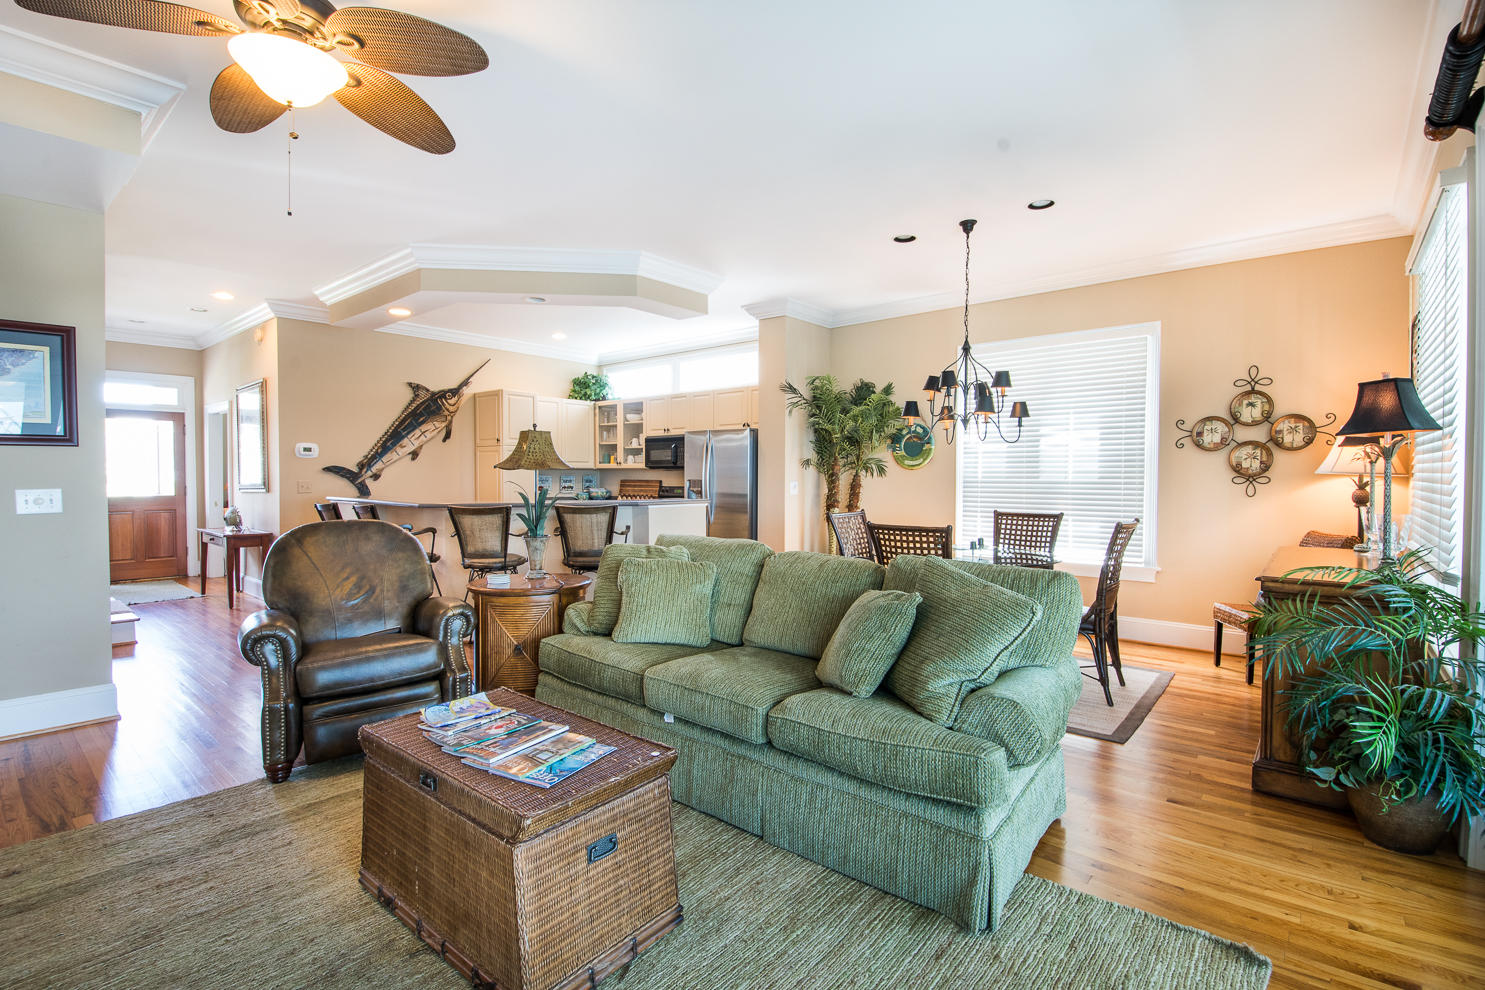 Tolers Cove Homes For Sale - B-4 & B-5 Tolers Cove Marina 70ft + Home, Mount Pleasant, SC - 33